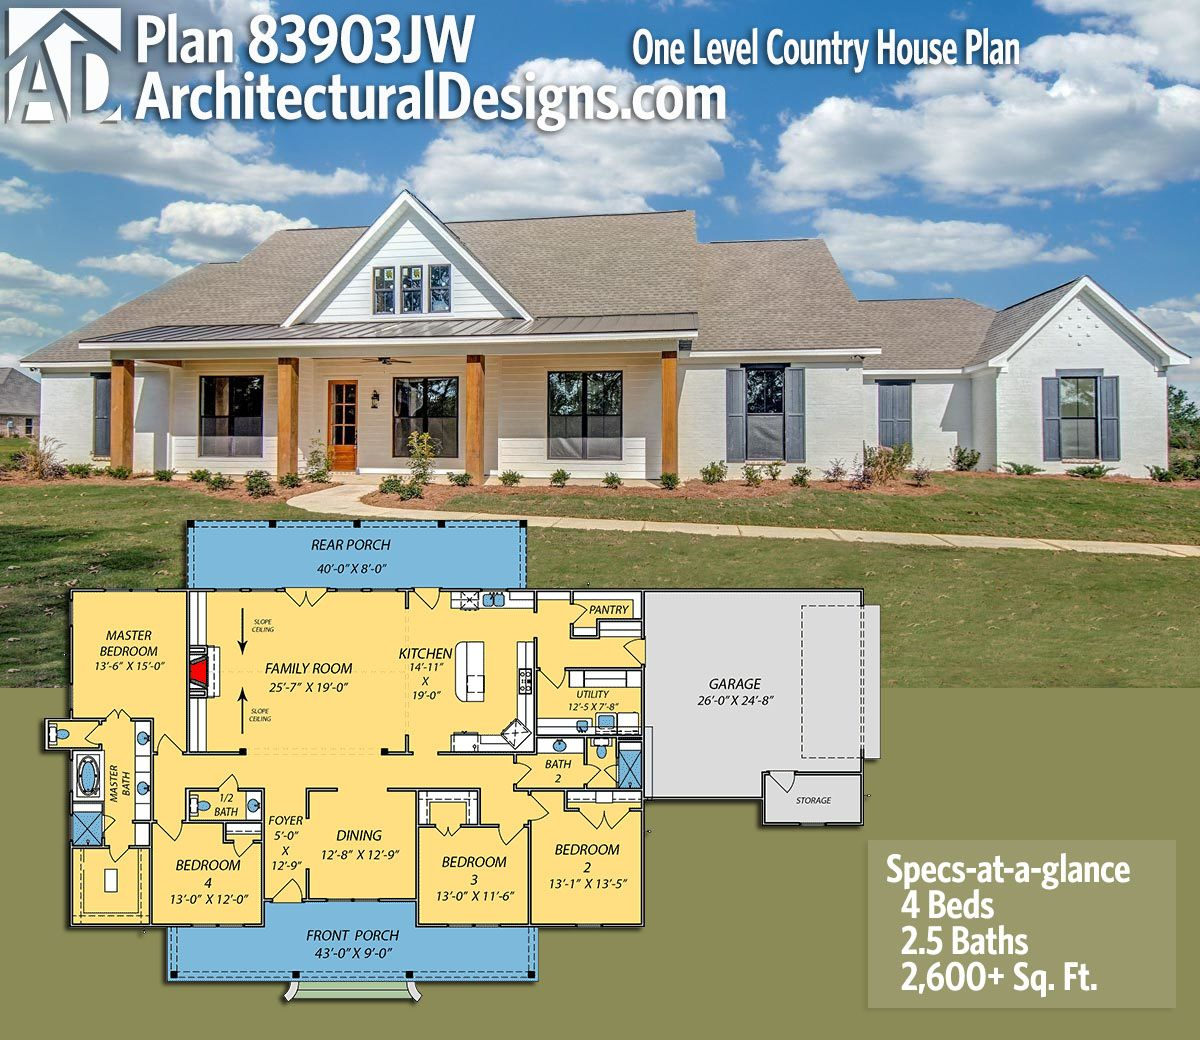 Plan 83903jw one level country house plan architectural for One level farmhouse house plans